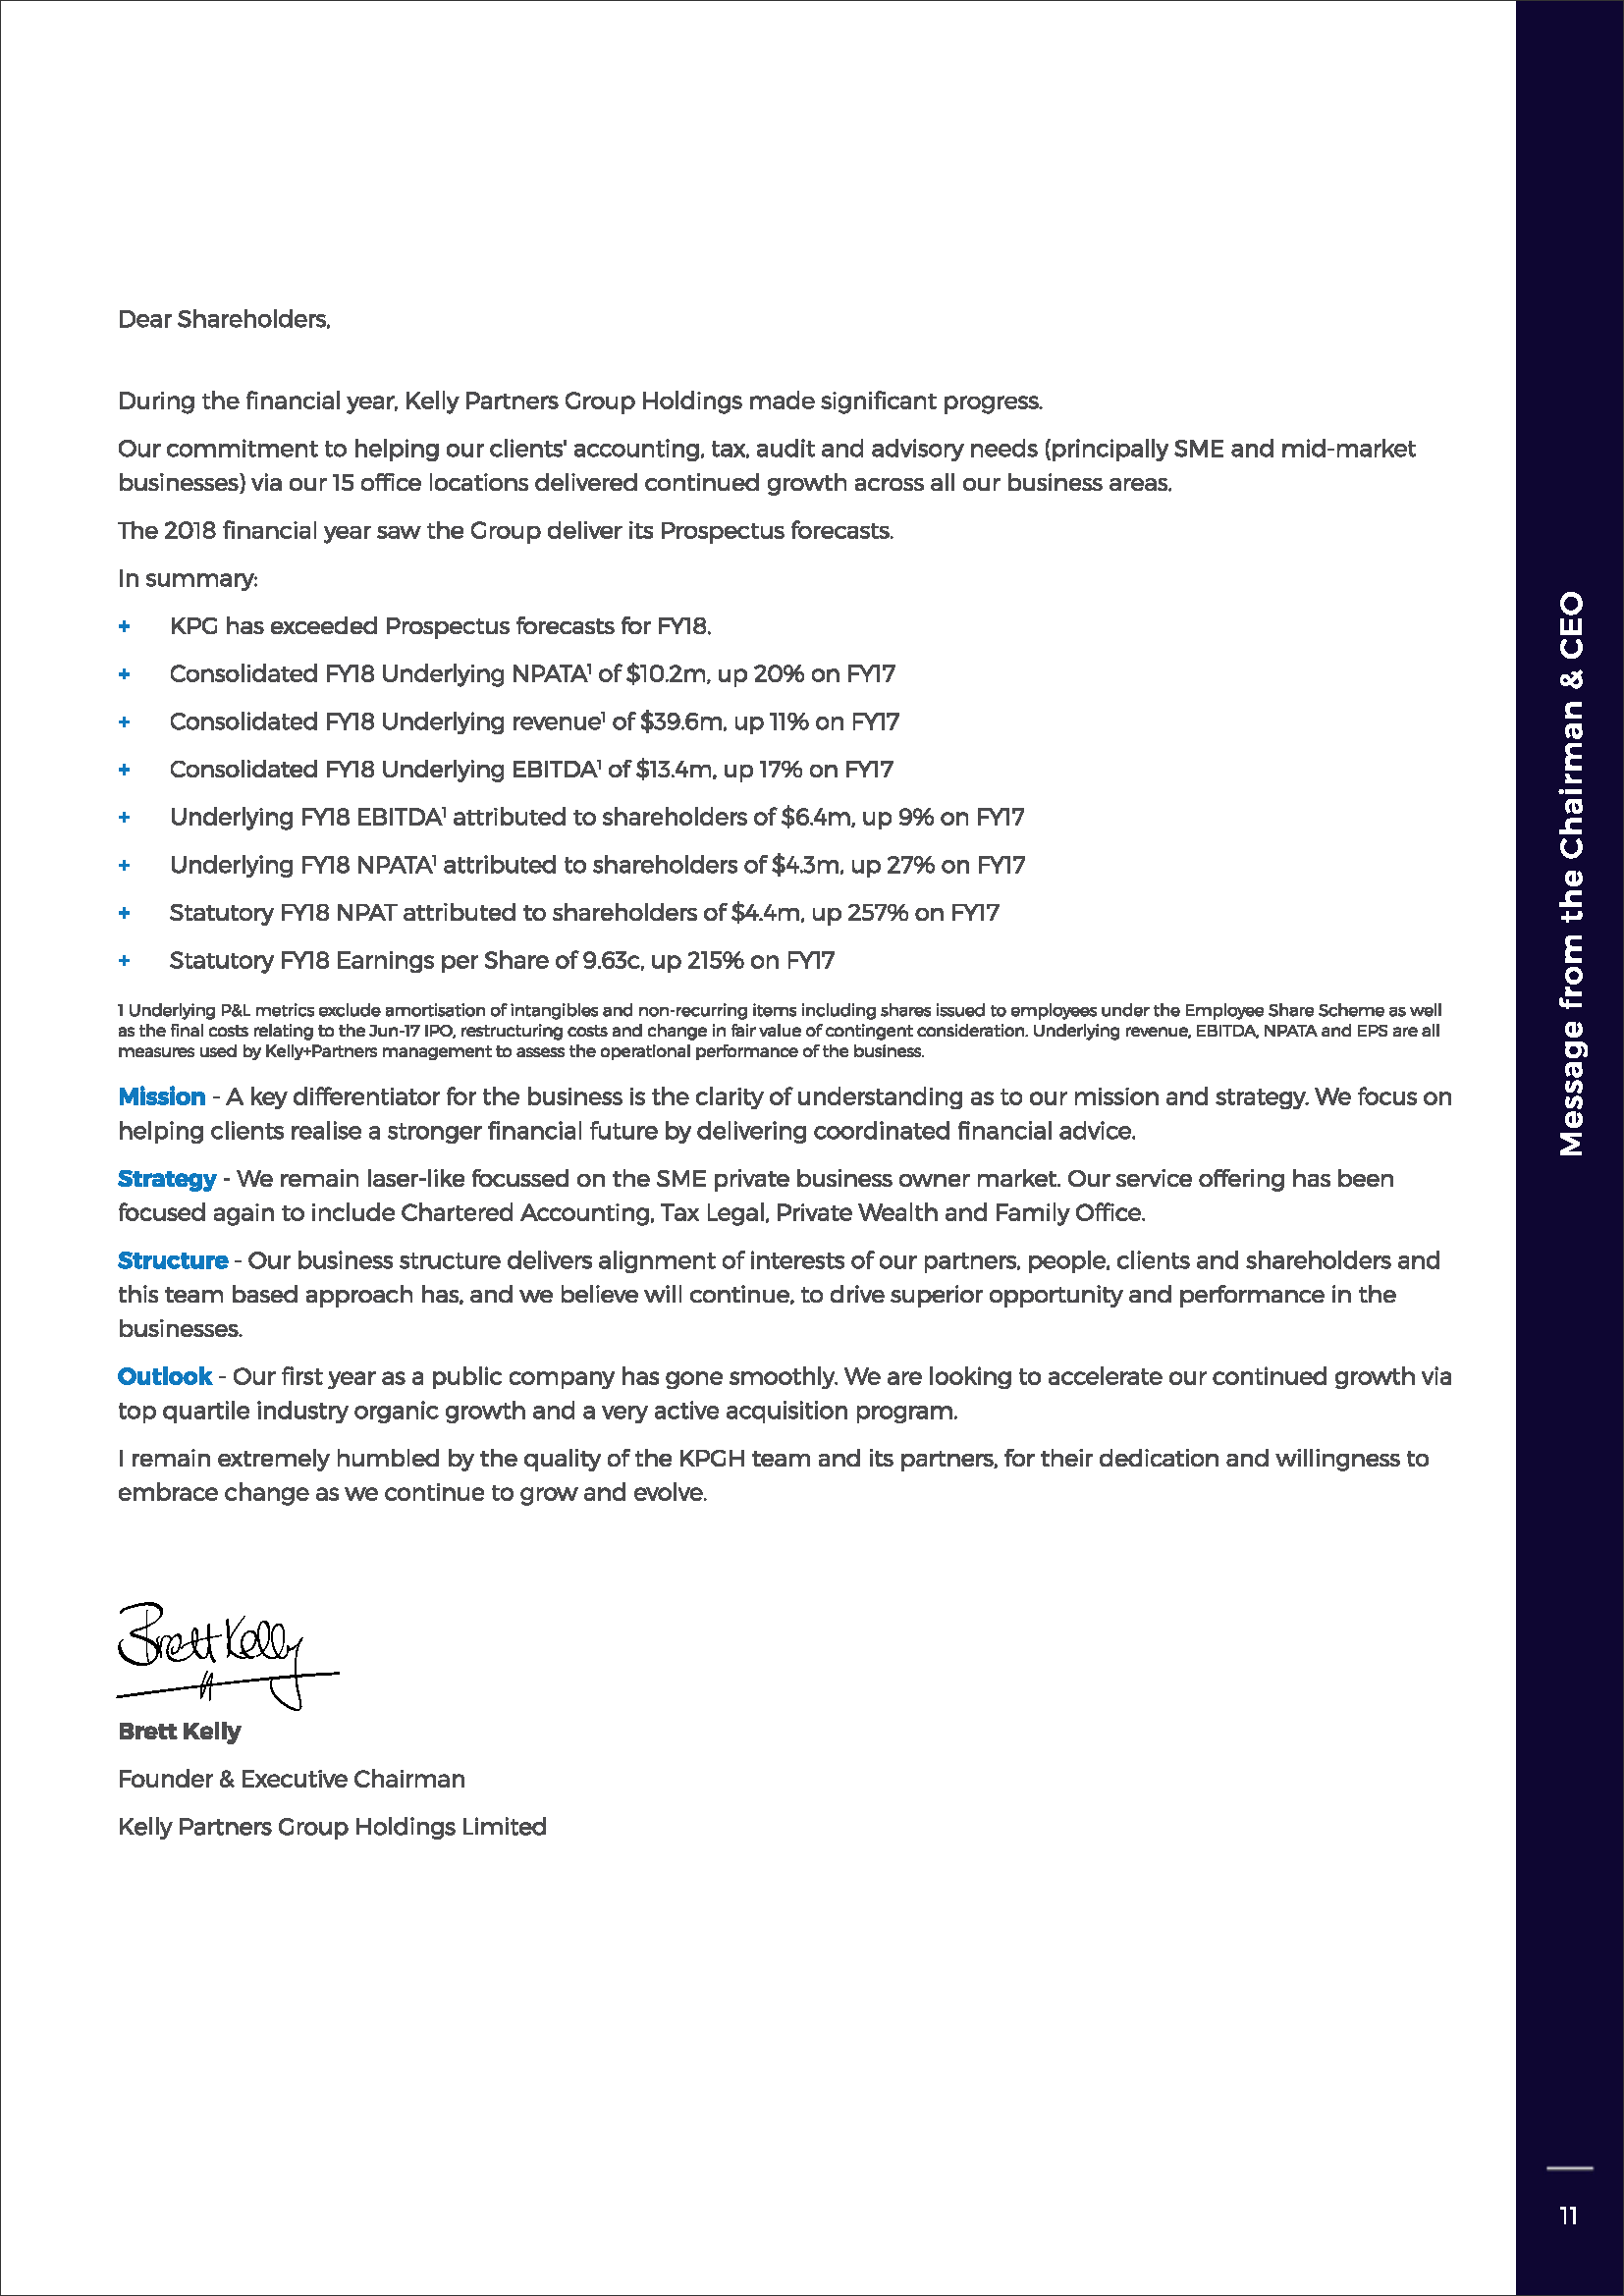 2018 Annual Letter